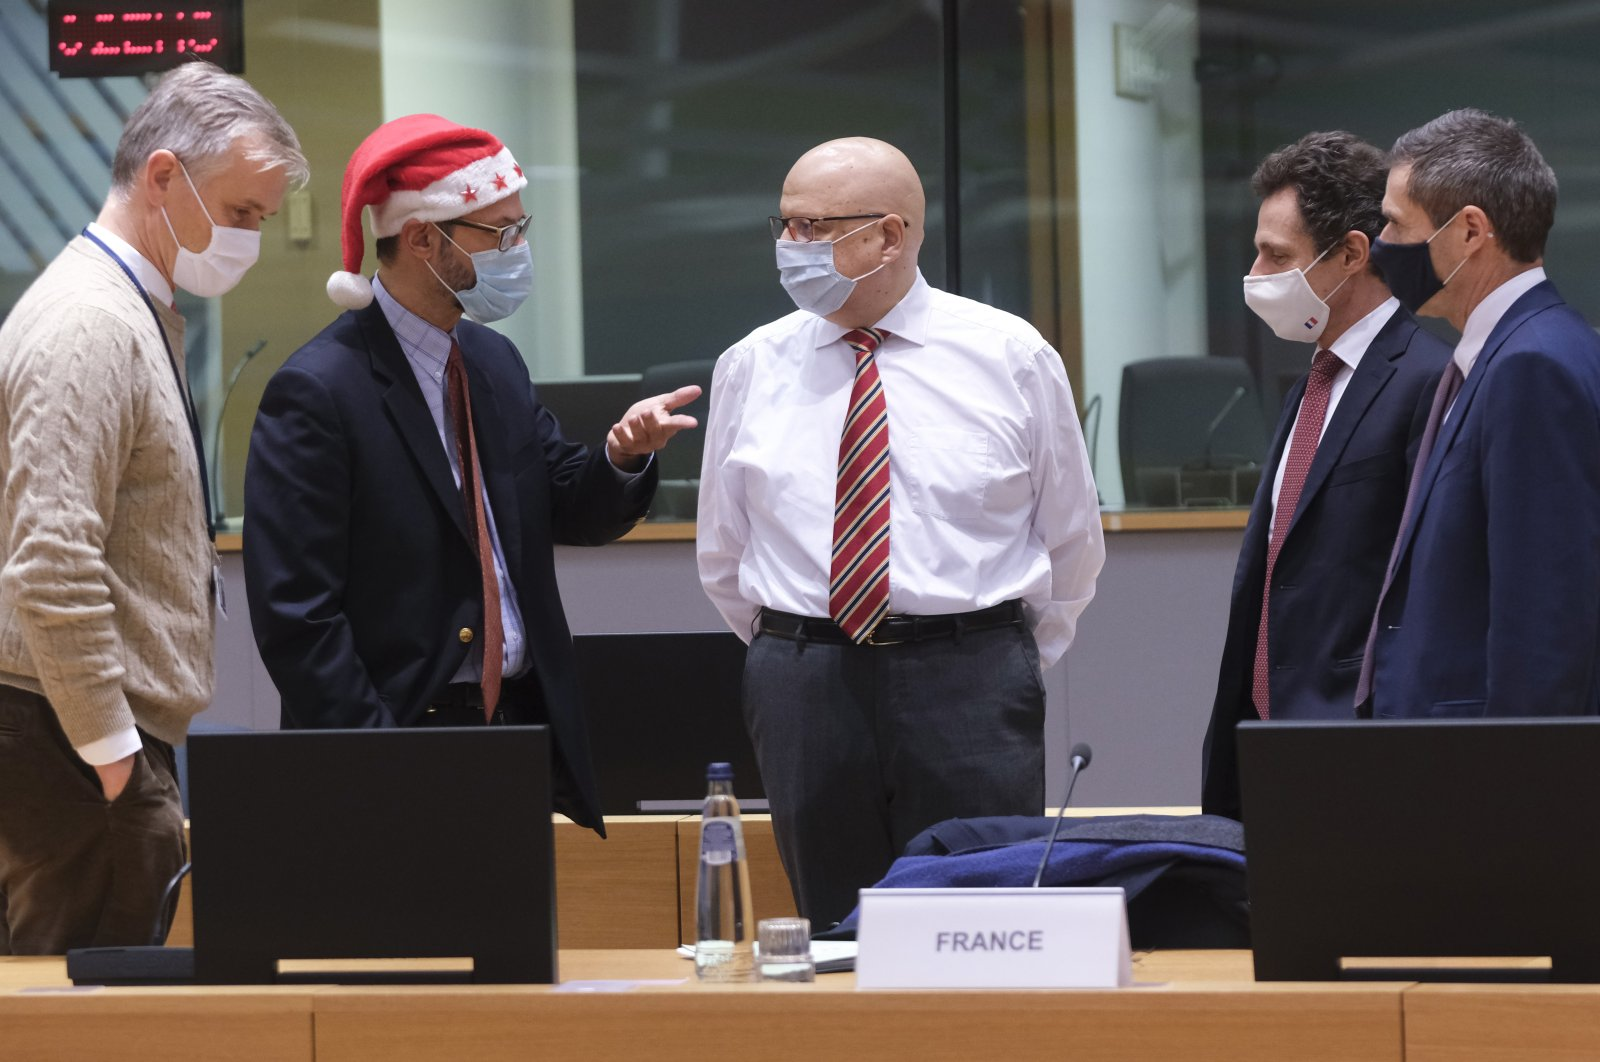 A colleague wears a Christmas hat as he speaks with EU ambassadors and representatives during a special meeting of Coreper, at the European Council building in Brussels, Belgium, Dec. 25, 2020. (AP Photo)